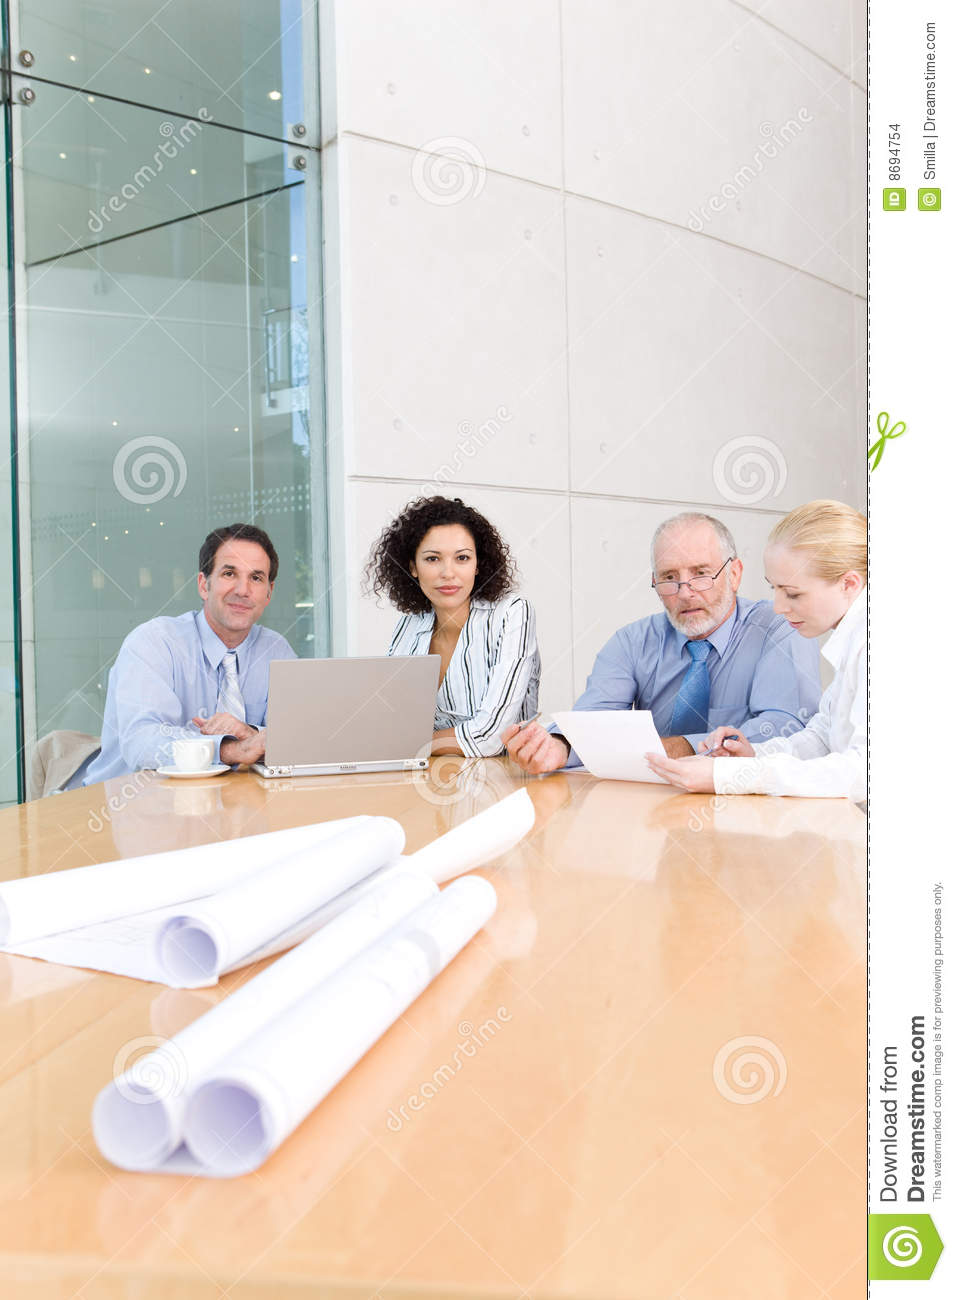 Architect business group meeting